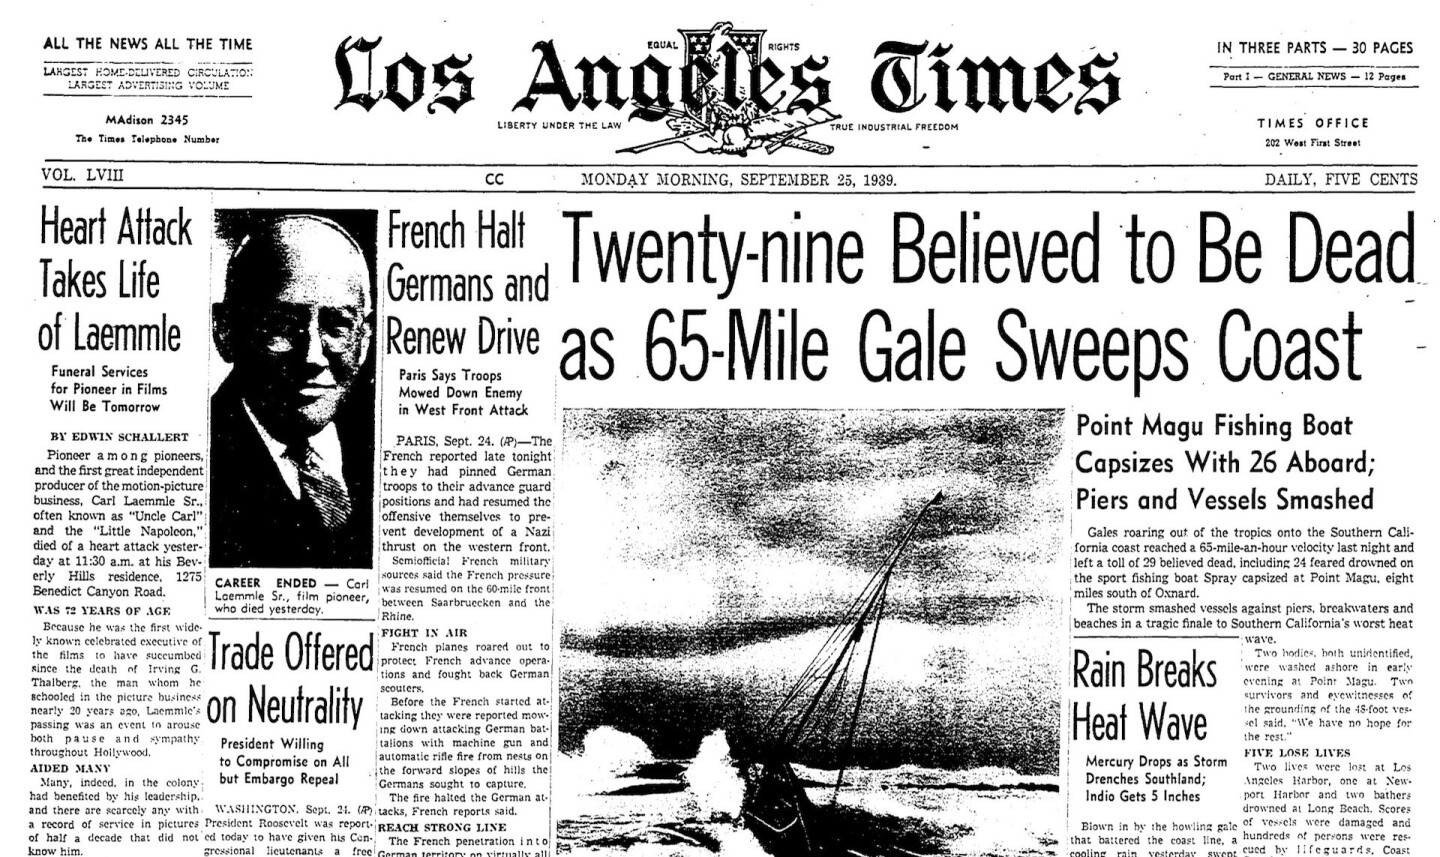 Front page of the Los Angeles Times on Sept. 25, 1939